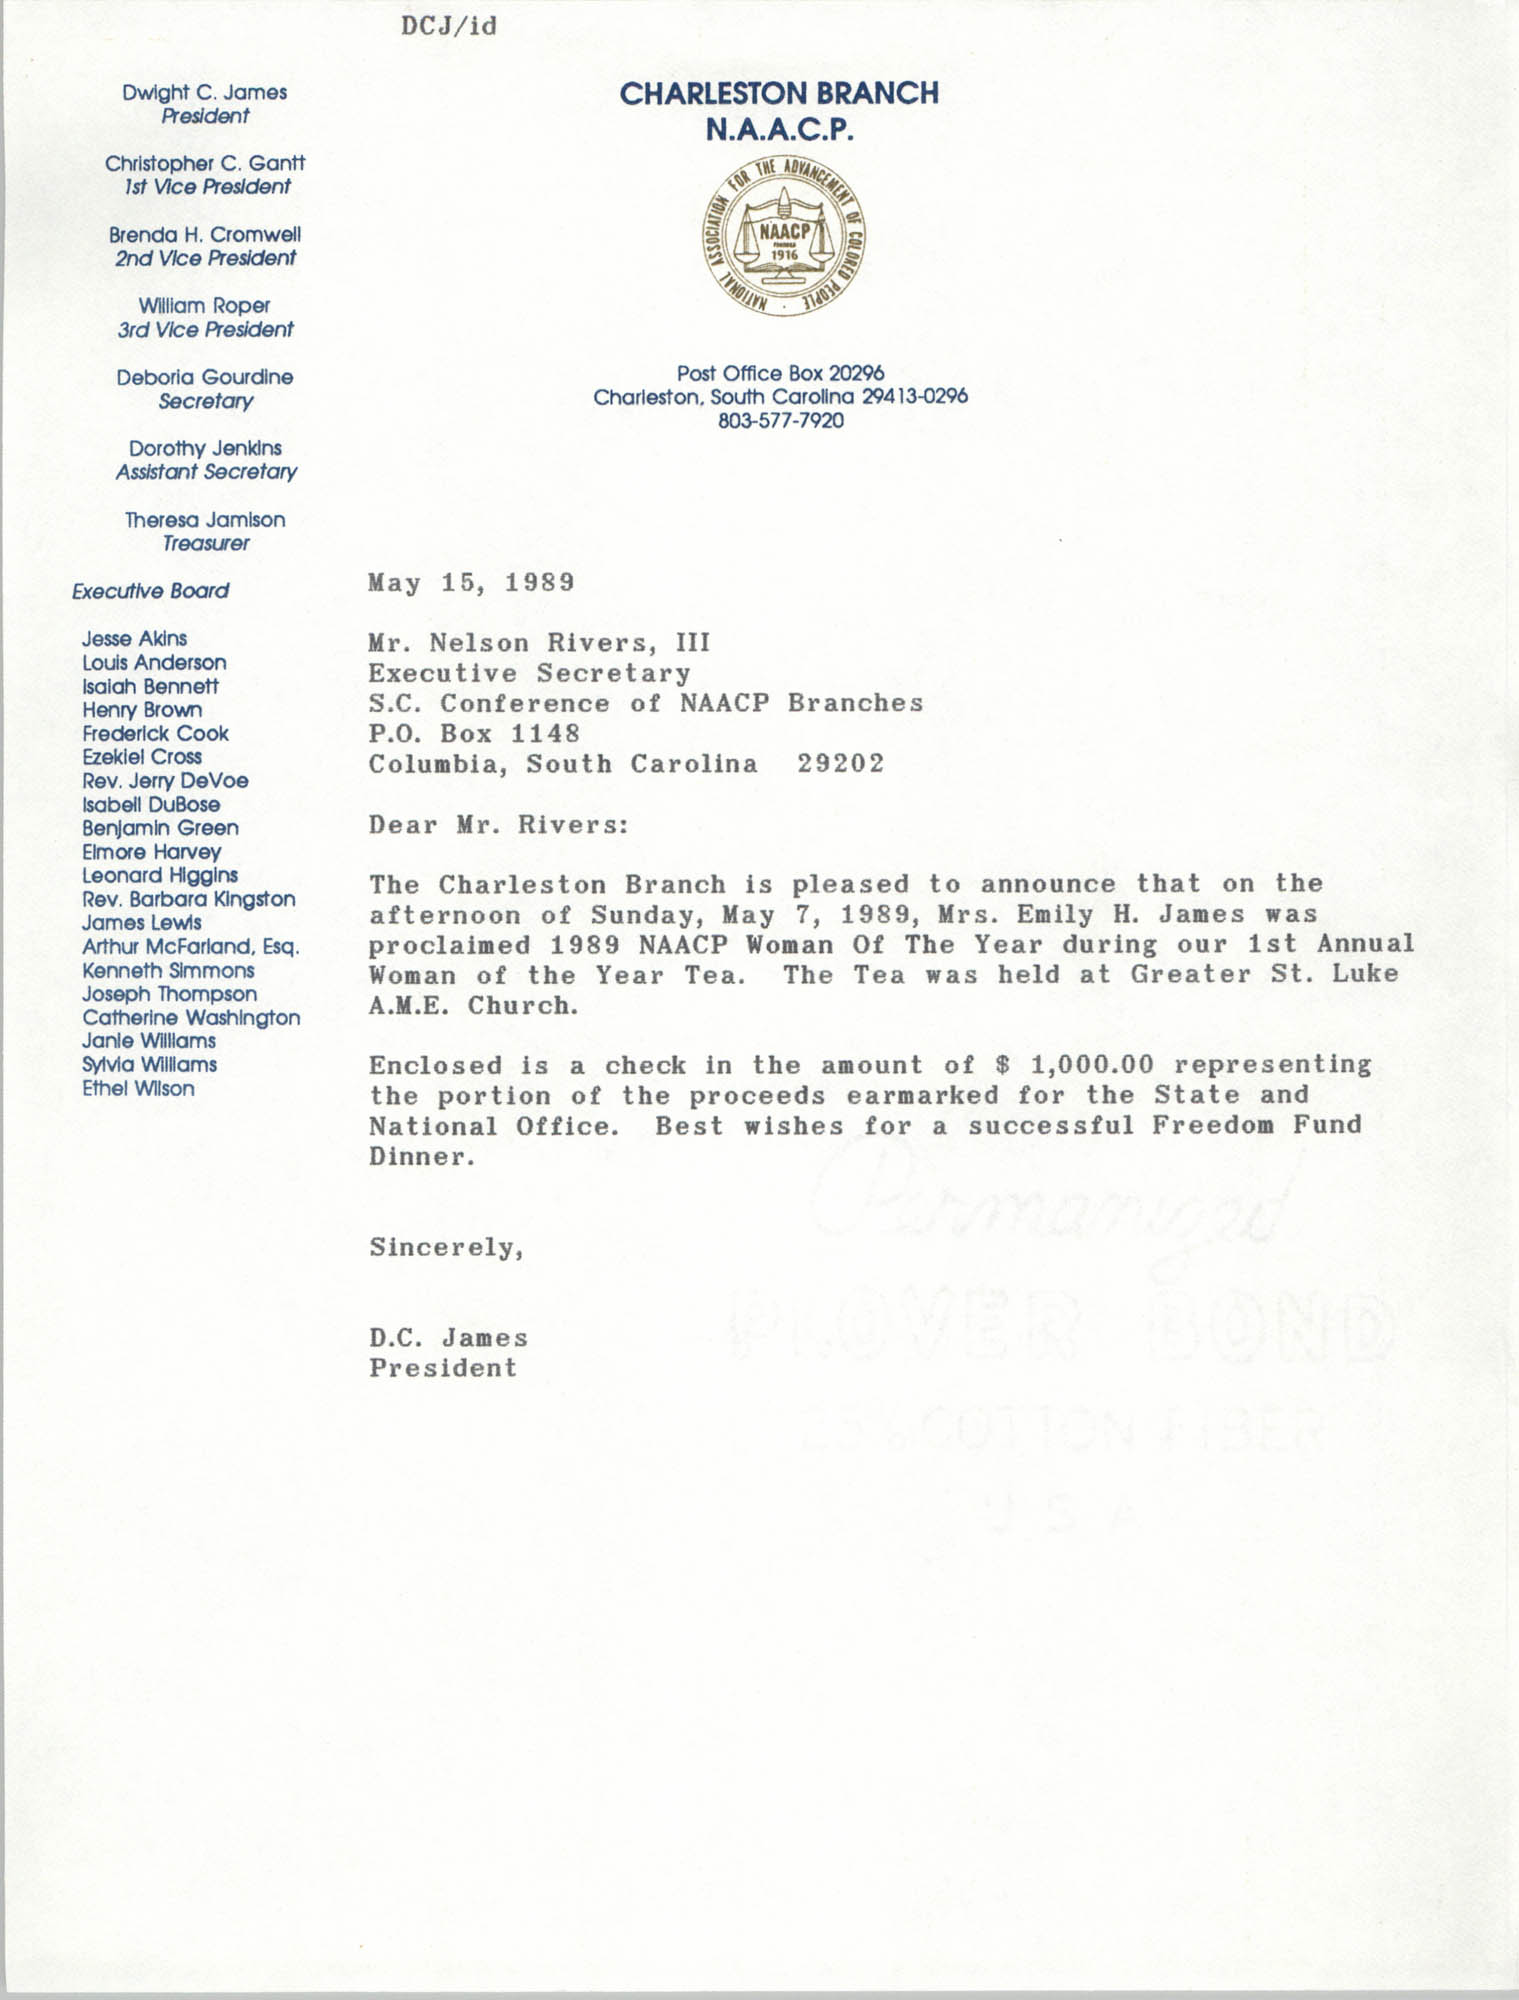 Letter from Dwight C. James to Nelson Rivers, III, May 15, 1989